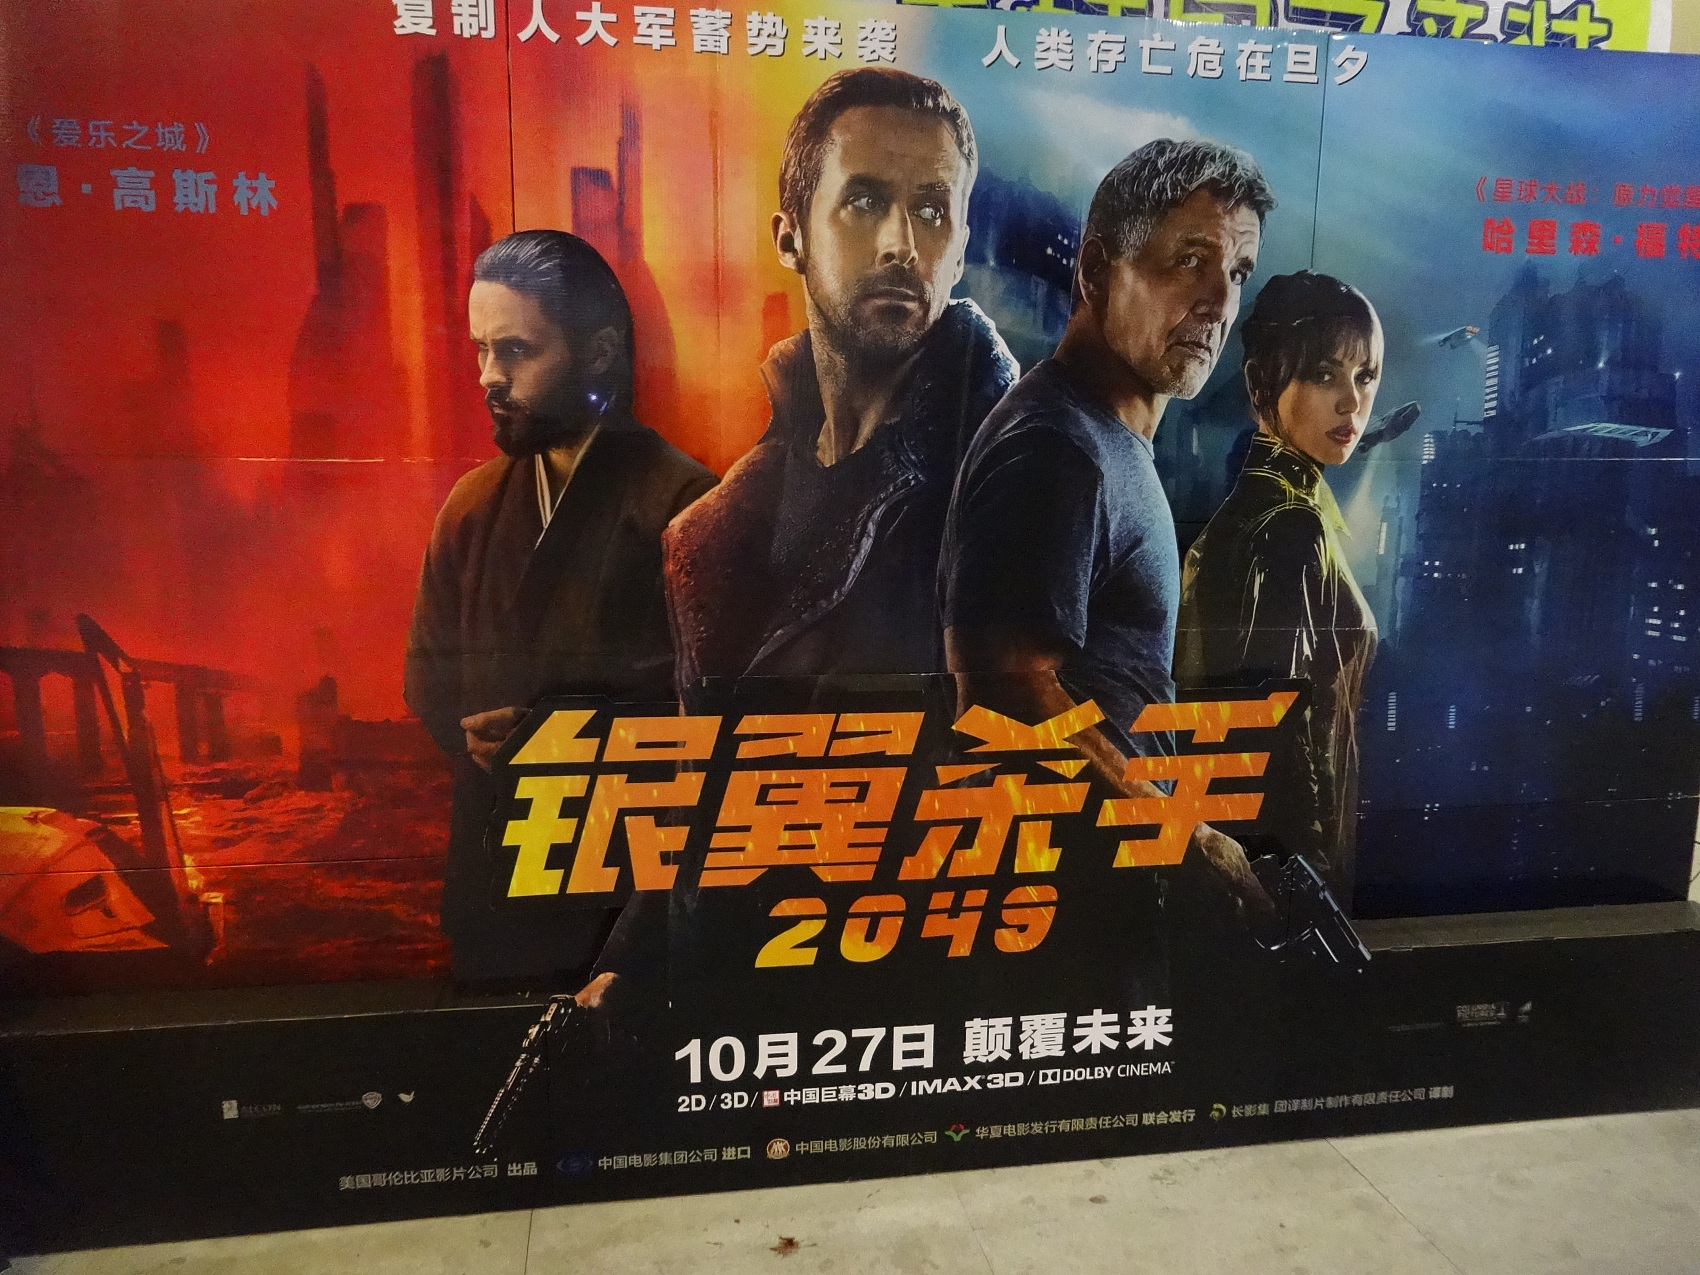 American films in China: a closer cultural bond